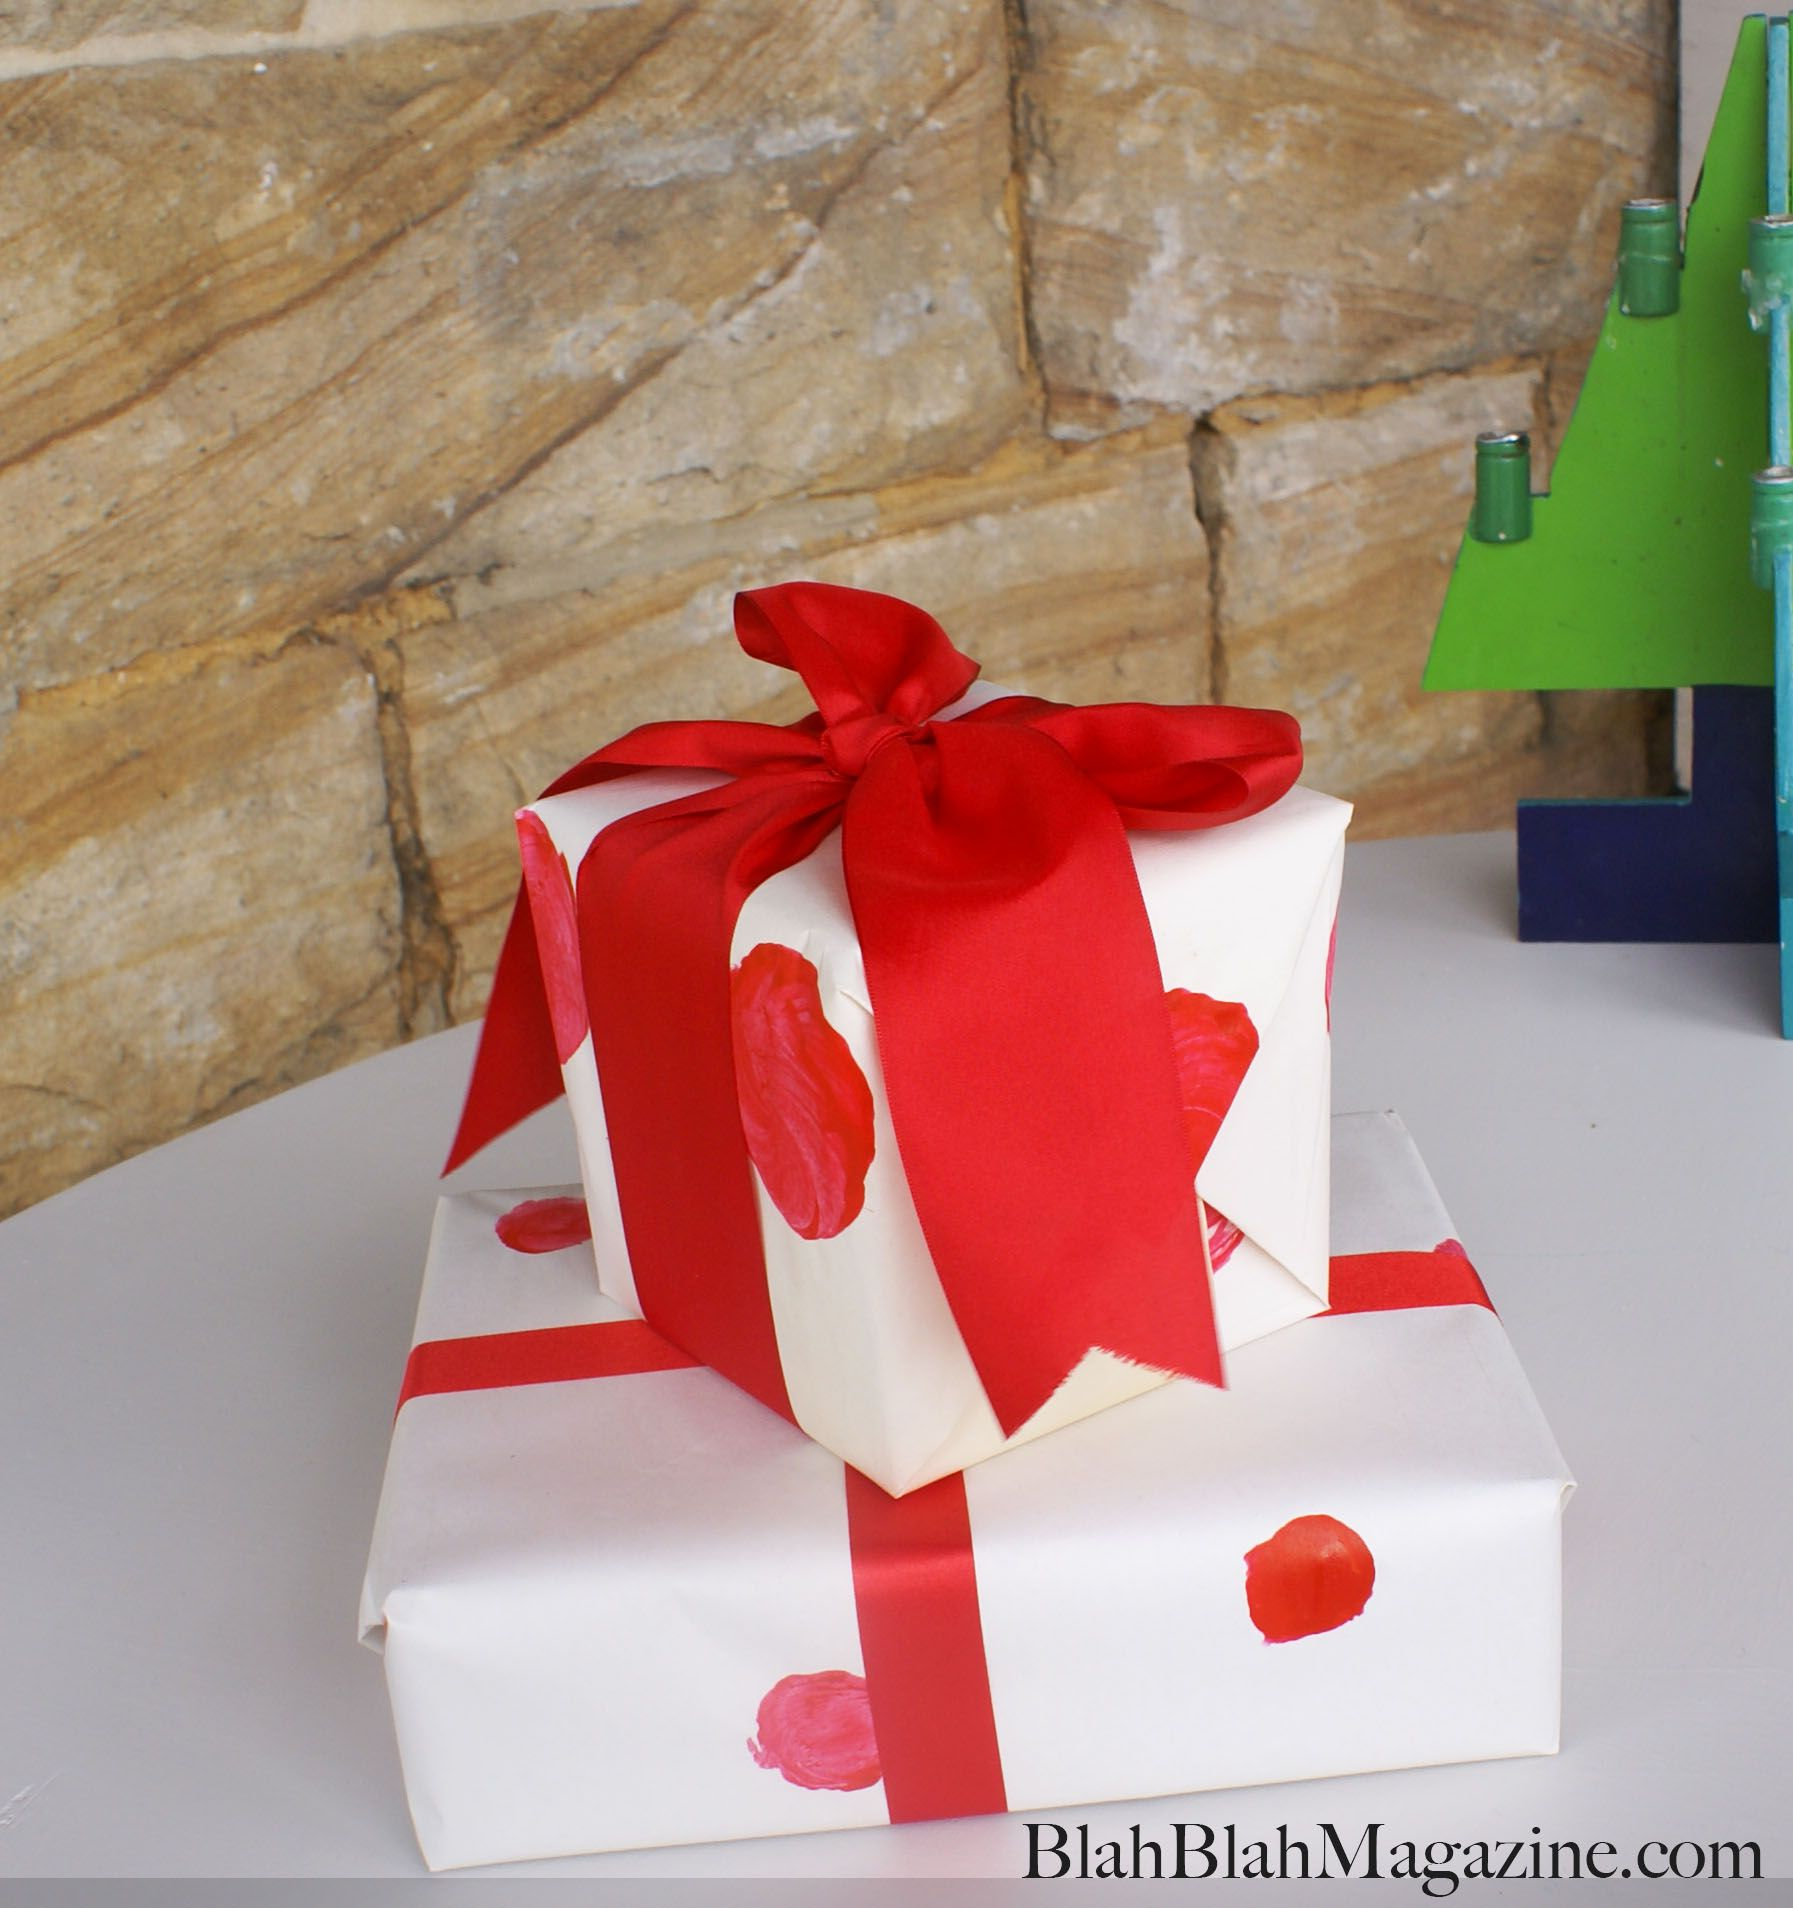 Wrapping Paper Made Using Childrens Paint And Cork And Apple